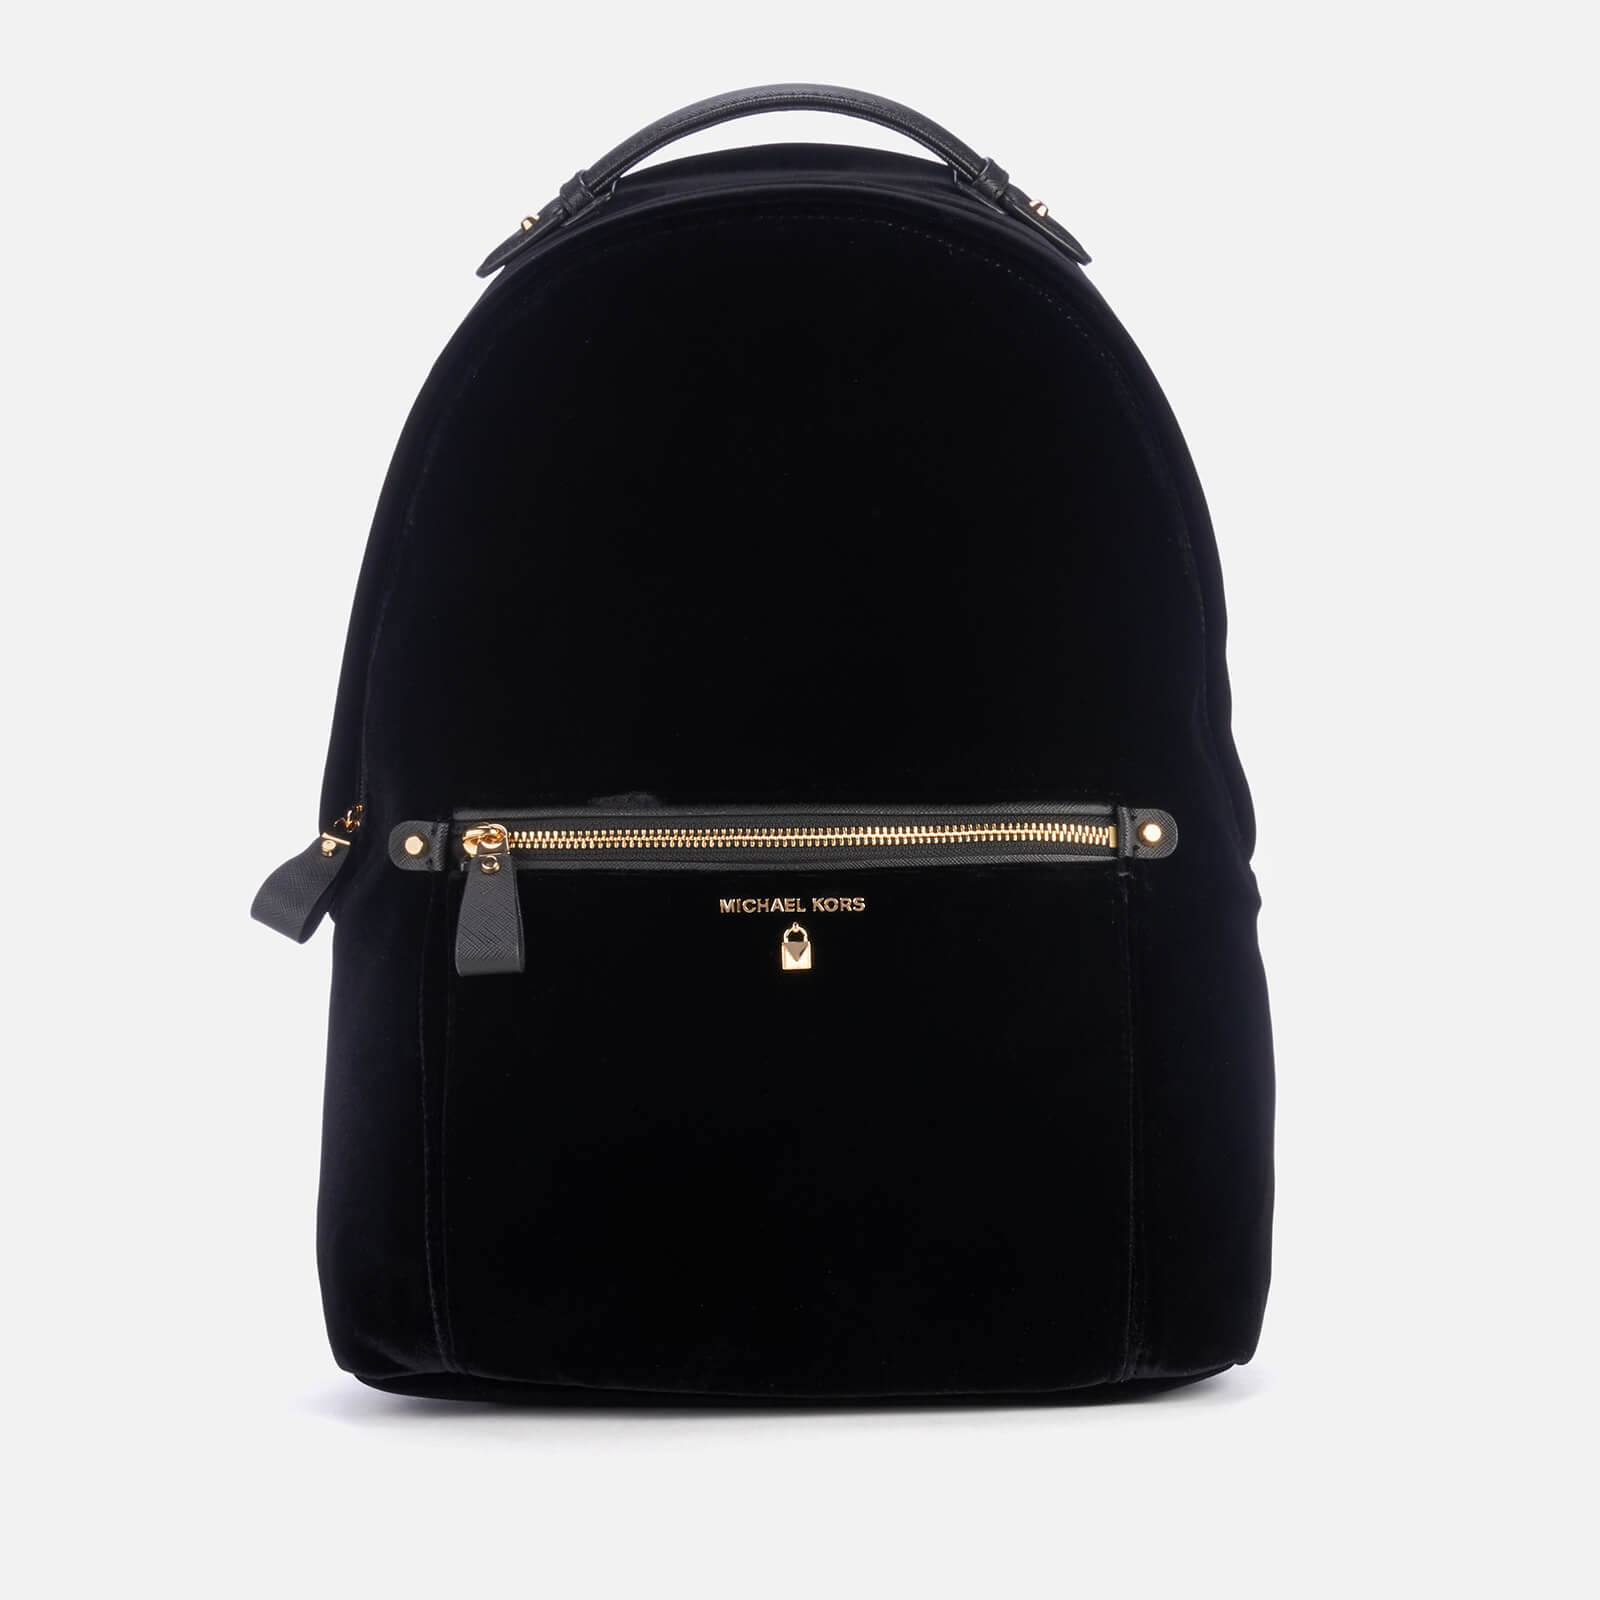 61604a463adf6a MICHAEL MICHAEL KORS Women's Nylon Kelsey Large Backpack - Black Velvet -  Free UK Delivery over £50